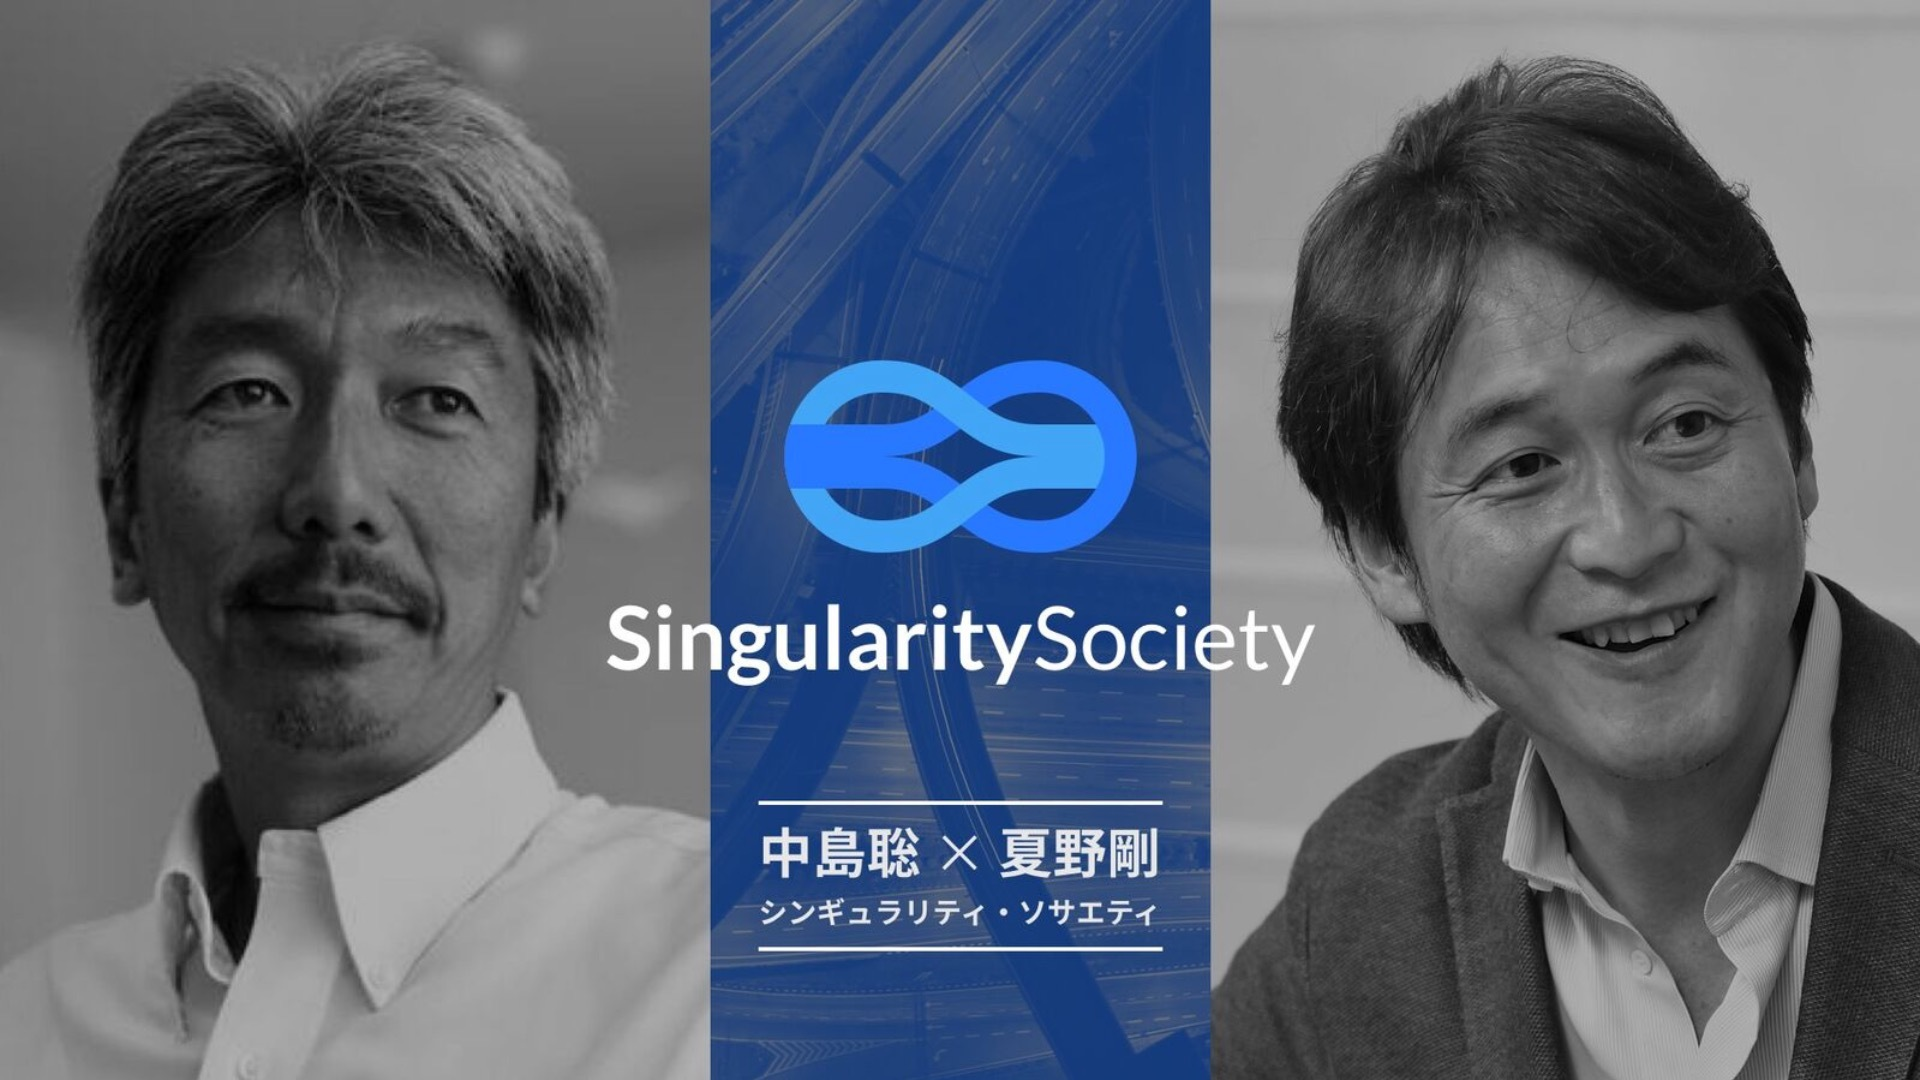 Singularity Society